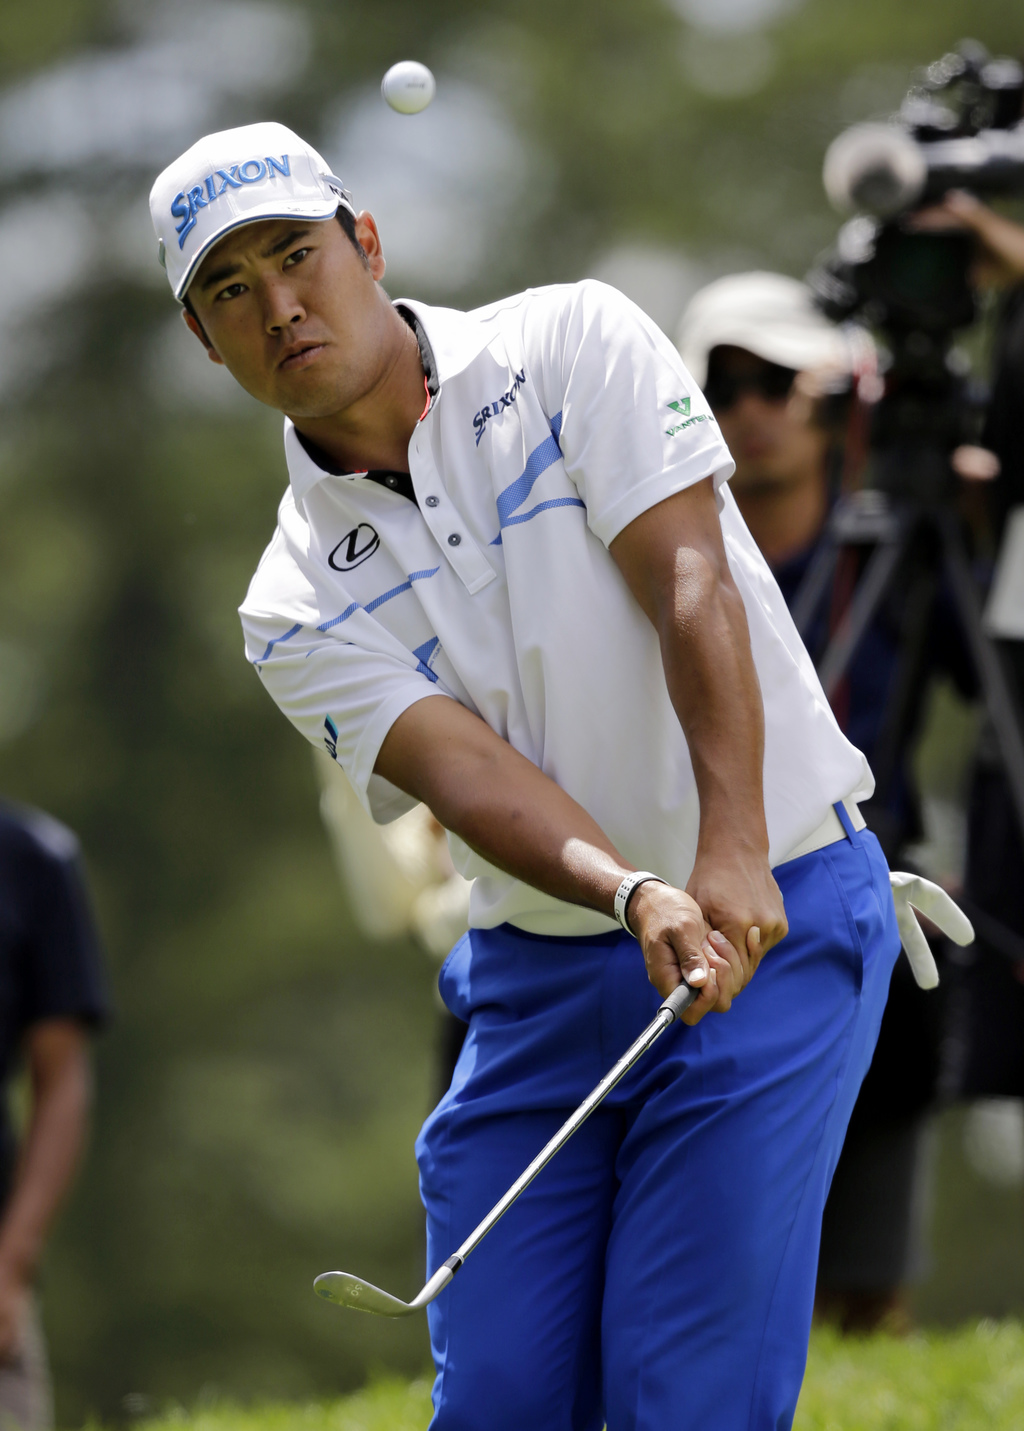 Hideki Matsuyama, from Japan, chips in the ball for an eagle on the second green during the final round of the Bridgestone Invitational golf tournamen...